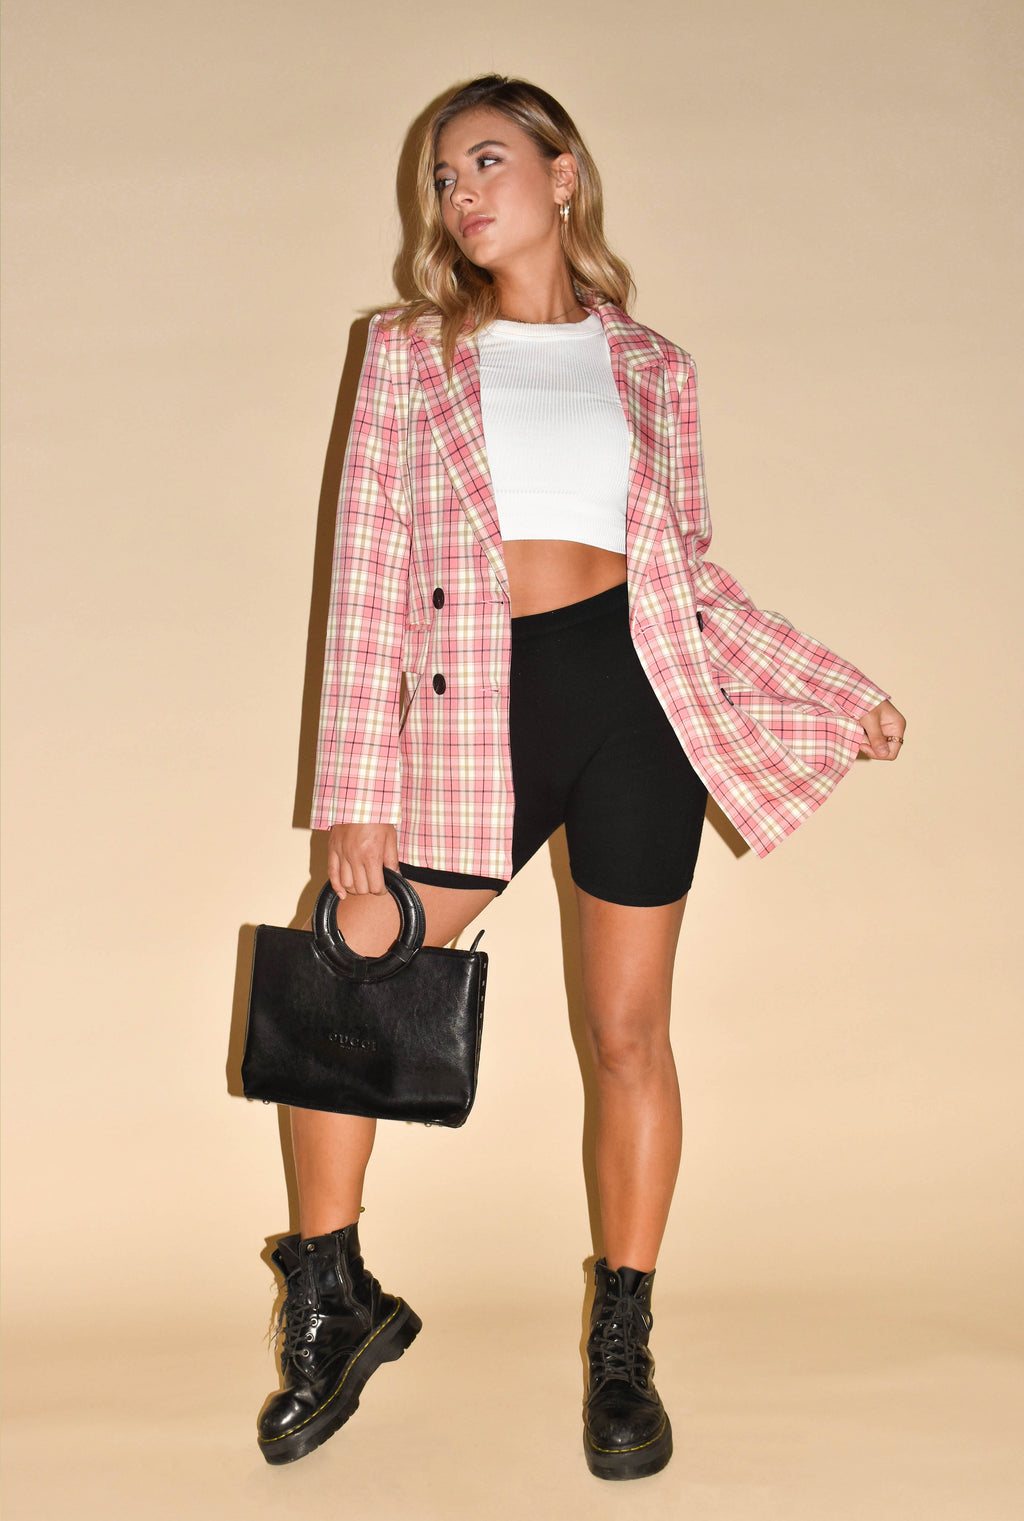 Totally Buggin' Pink Plaid Blazer